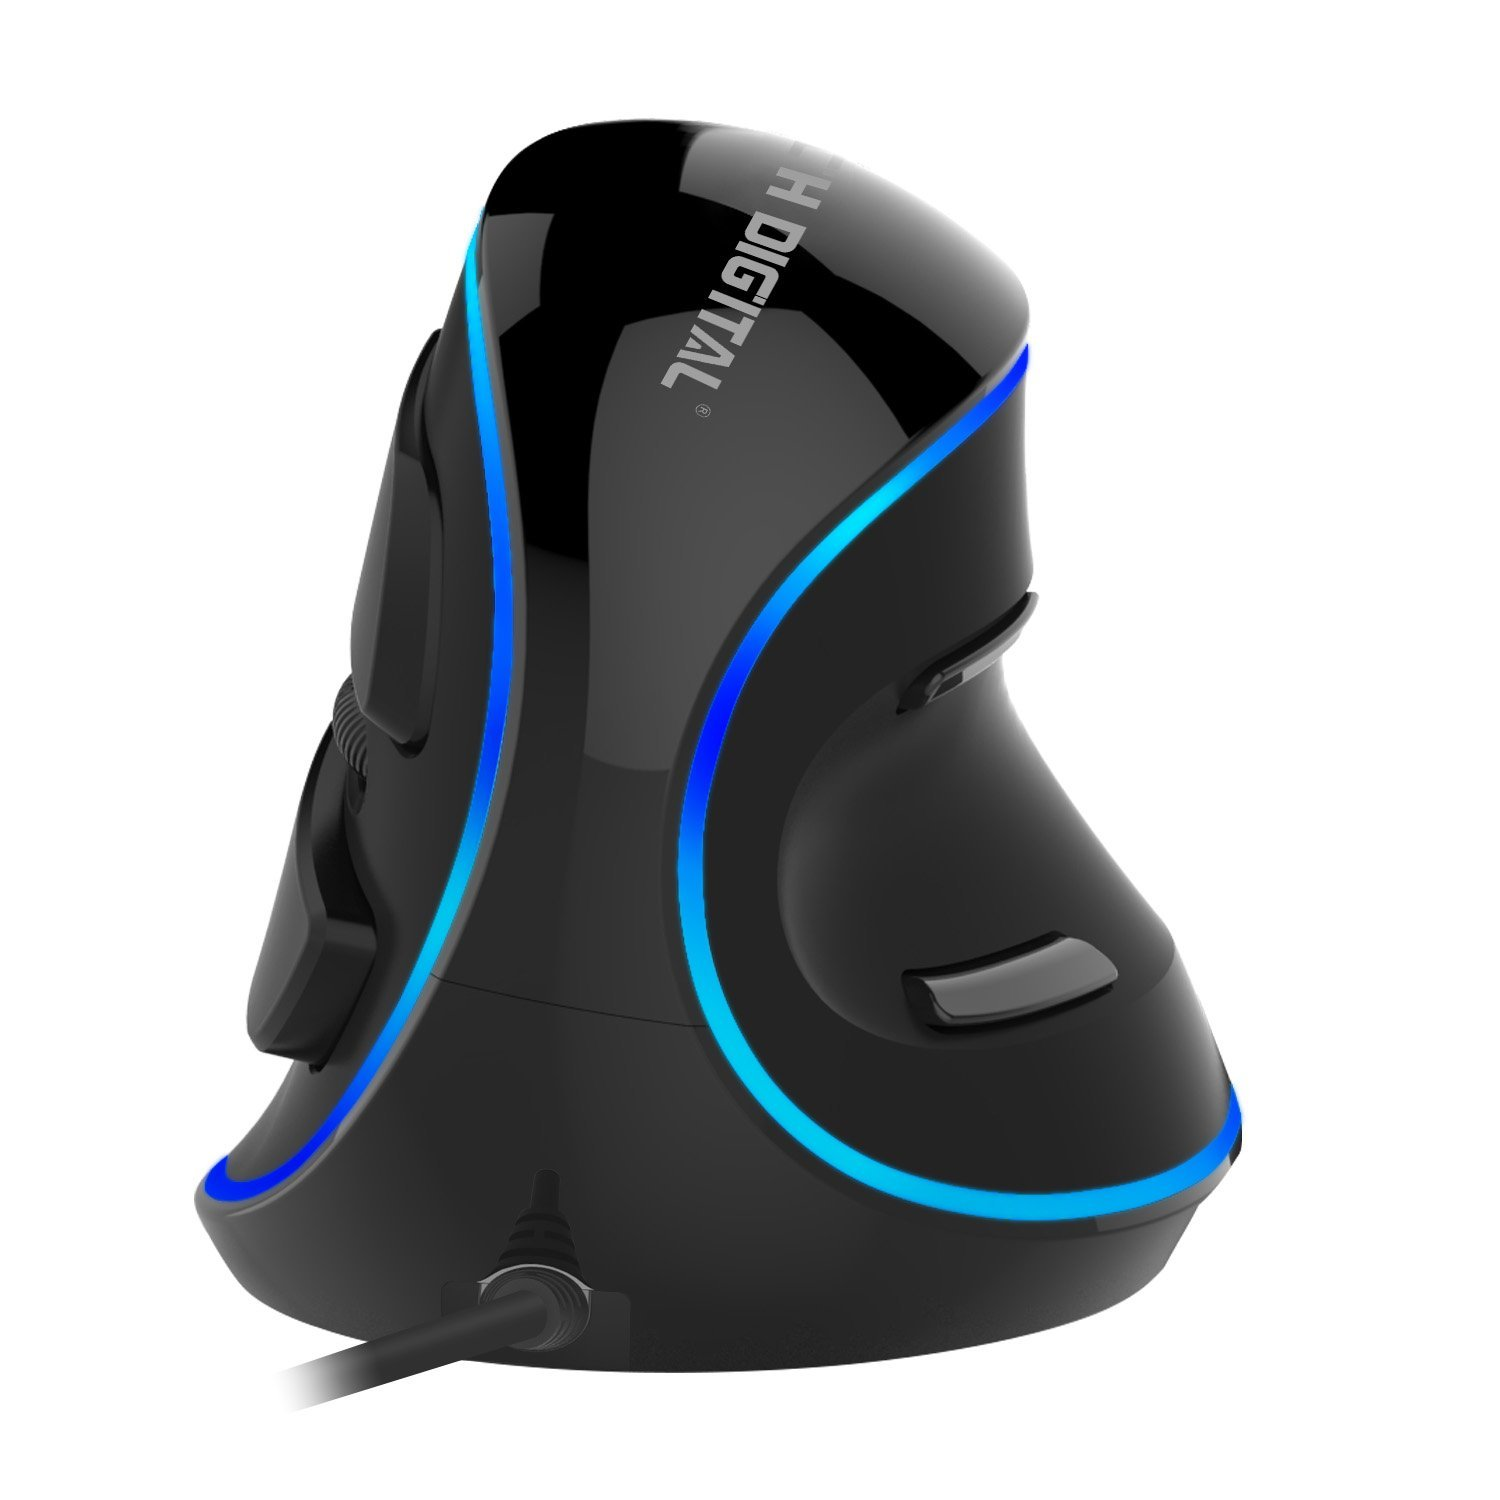 J-Tech Digital V628 (Gen2) Scroll Endurance Mouse Ergonomic Vertical USB Mouse with Adjustable Sensitivity (600/1000/1600 DPI), Removable Palm Rest & Thumb Buttons -(Wired with Blue LED) by J-Tech Digital